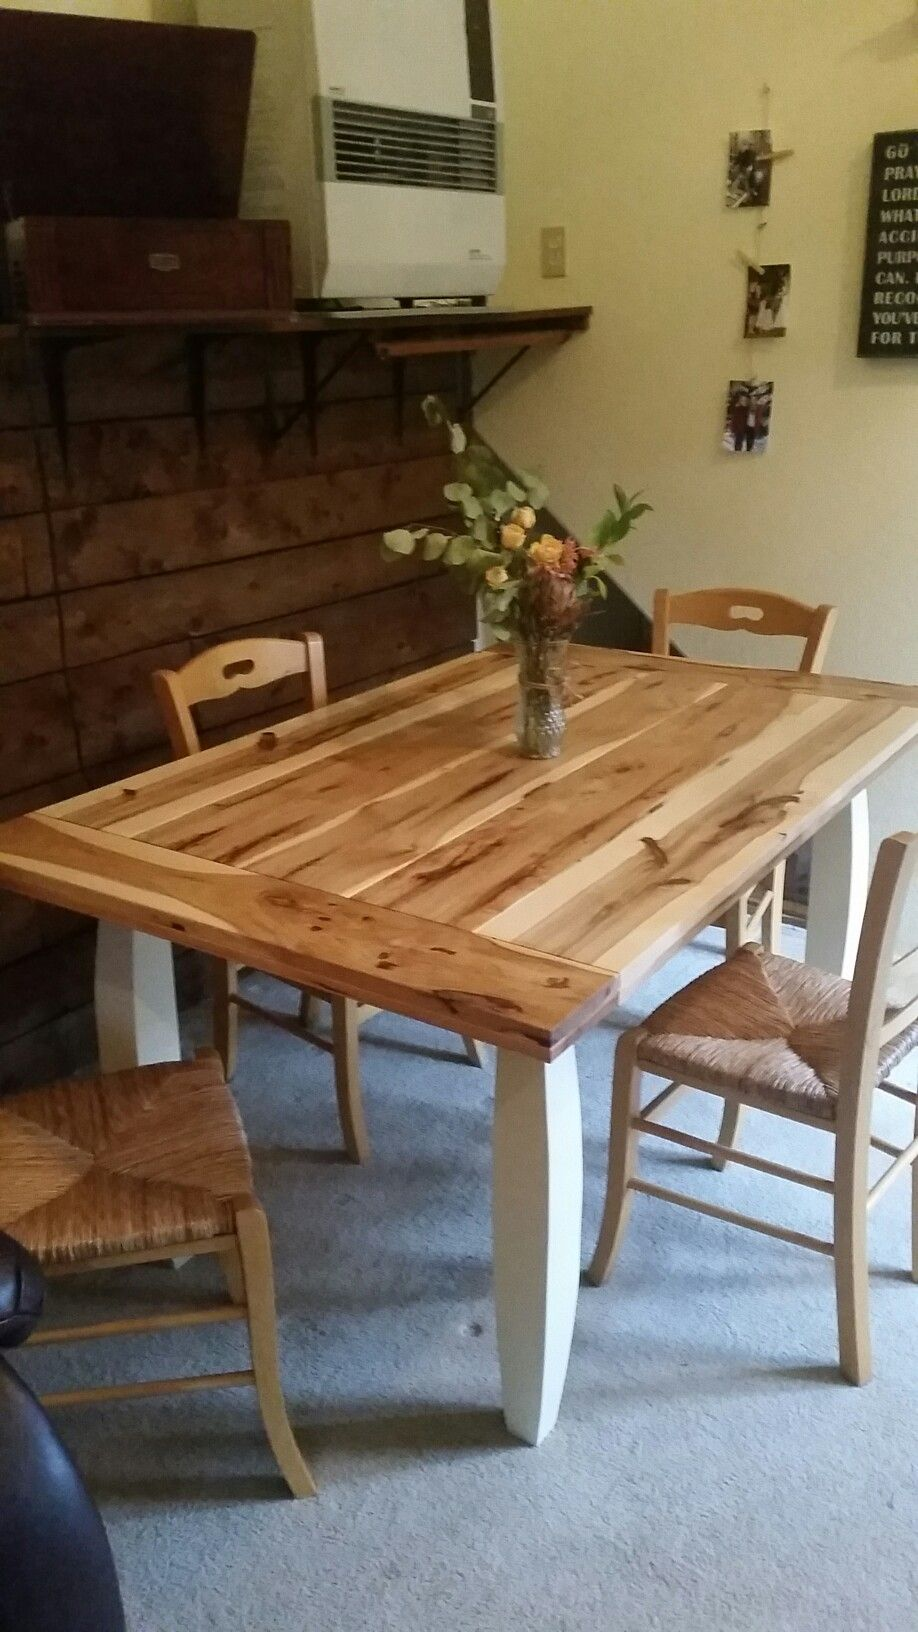 Rustic Hickory Table in 2019 | Barn table, Hickory kitchen ...